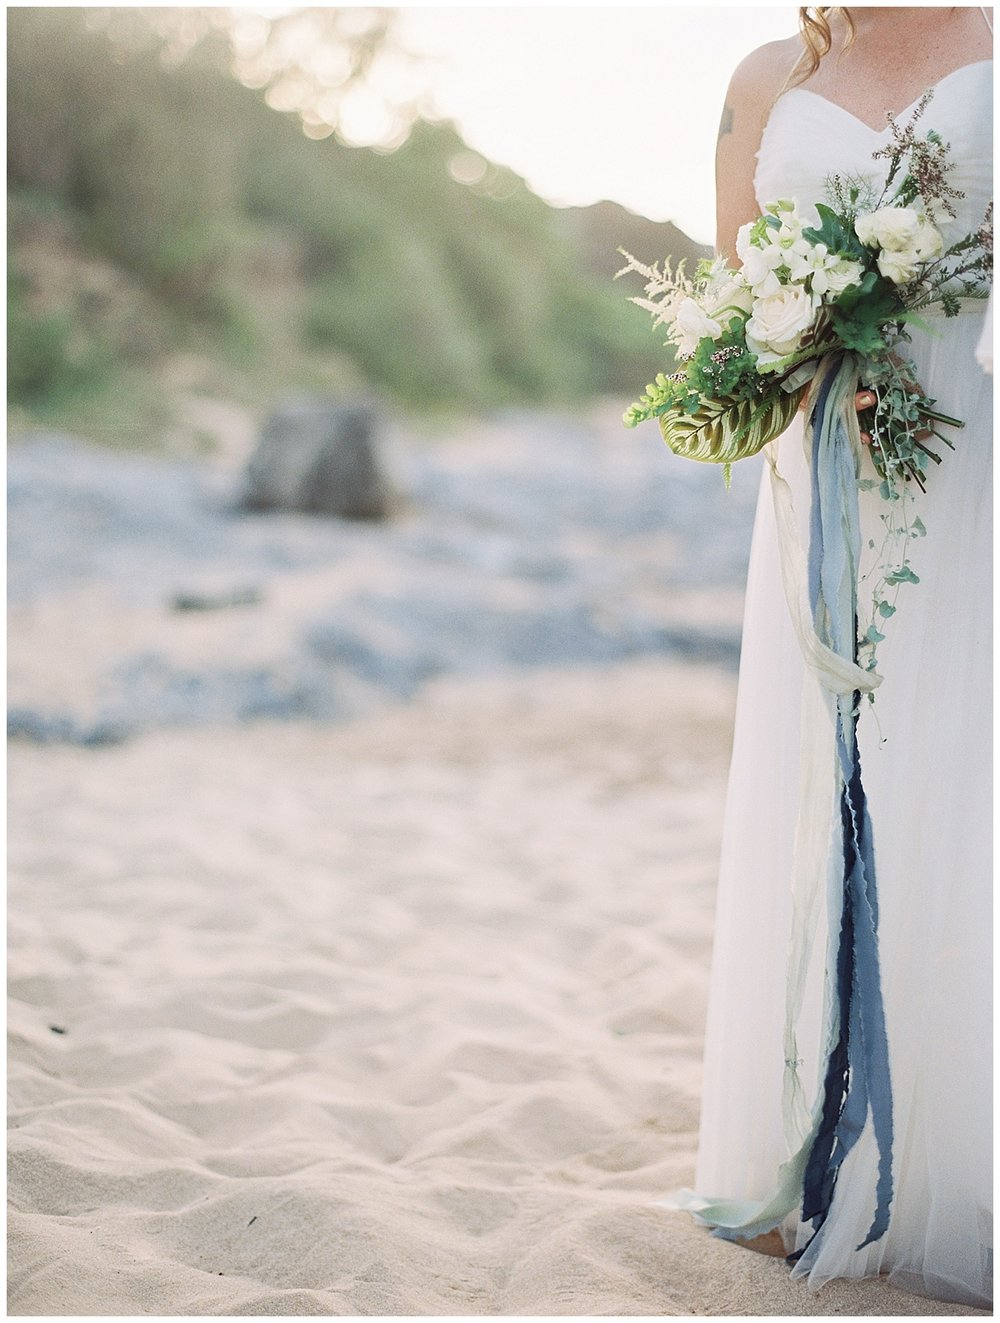 beach-elopement-bride-dress-white-bouquet-blue-ribbon.jpg